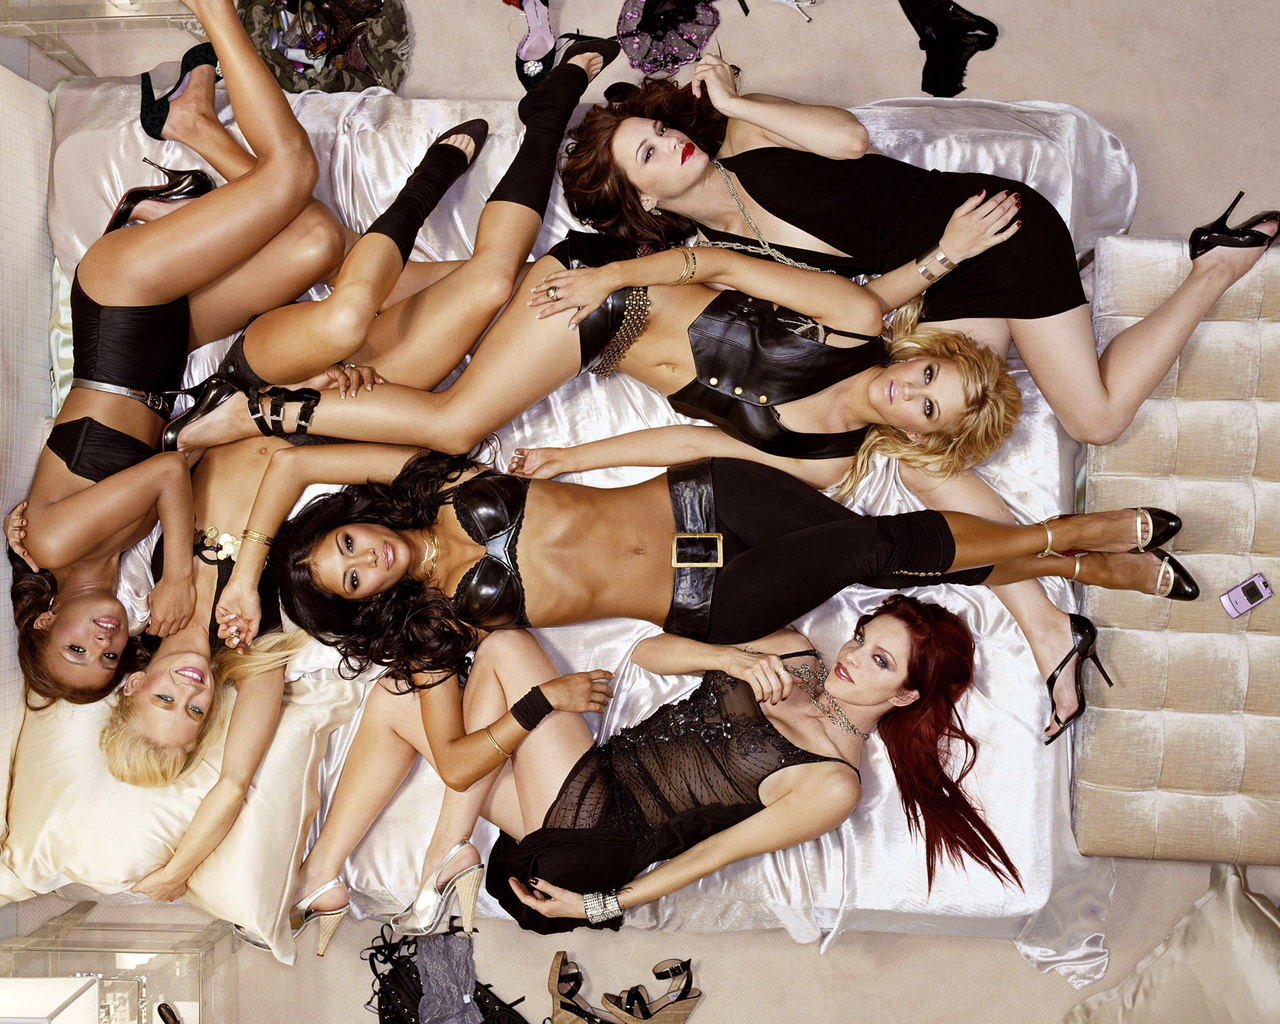 Pussycat dolls drop photo for new single react